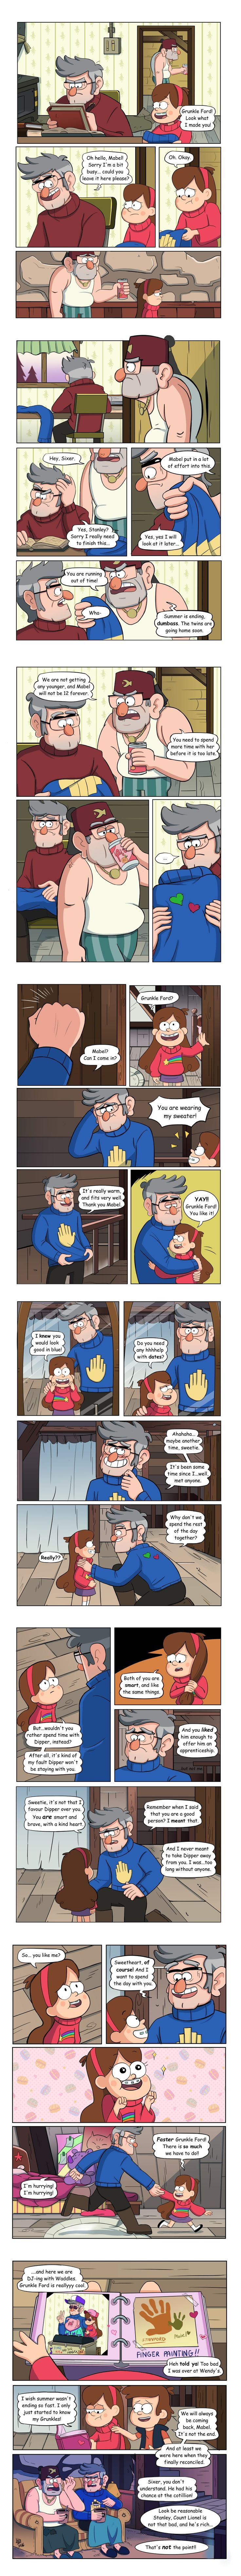 Mabel and Ford vs the Future: Complete Finally finished the comic! Mabel and Ford (with a little help from Stan) understand each other a little better before the end of summer. A take on Ford and Mabel bonding, as there was precious little of it in the series.